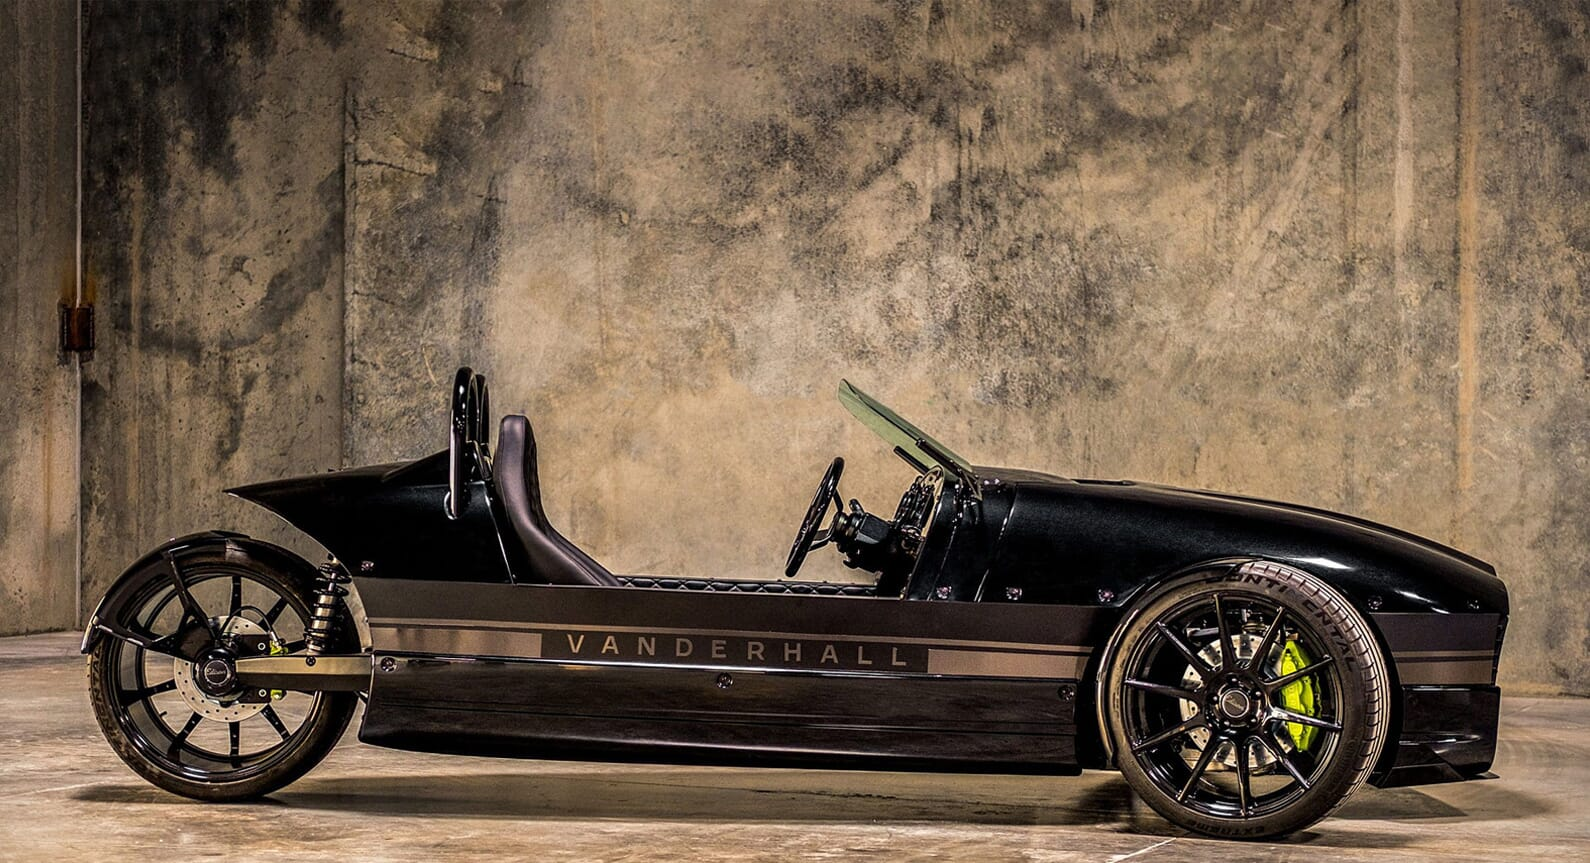 The Vanderhall Edison 3-Wheeler Capable Of 0-60 In 4 Seconds